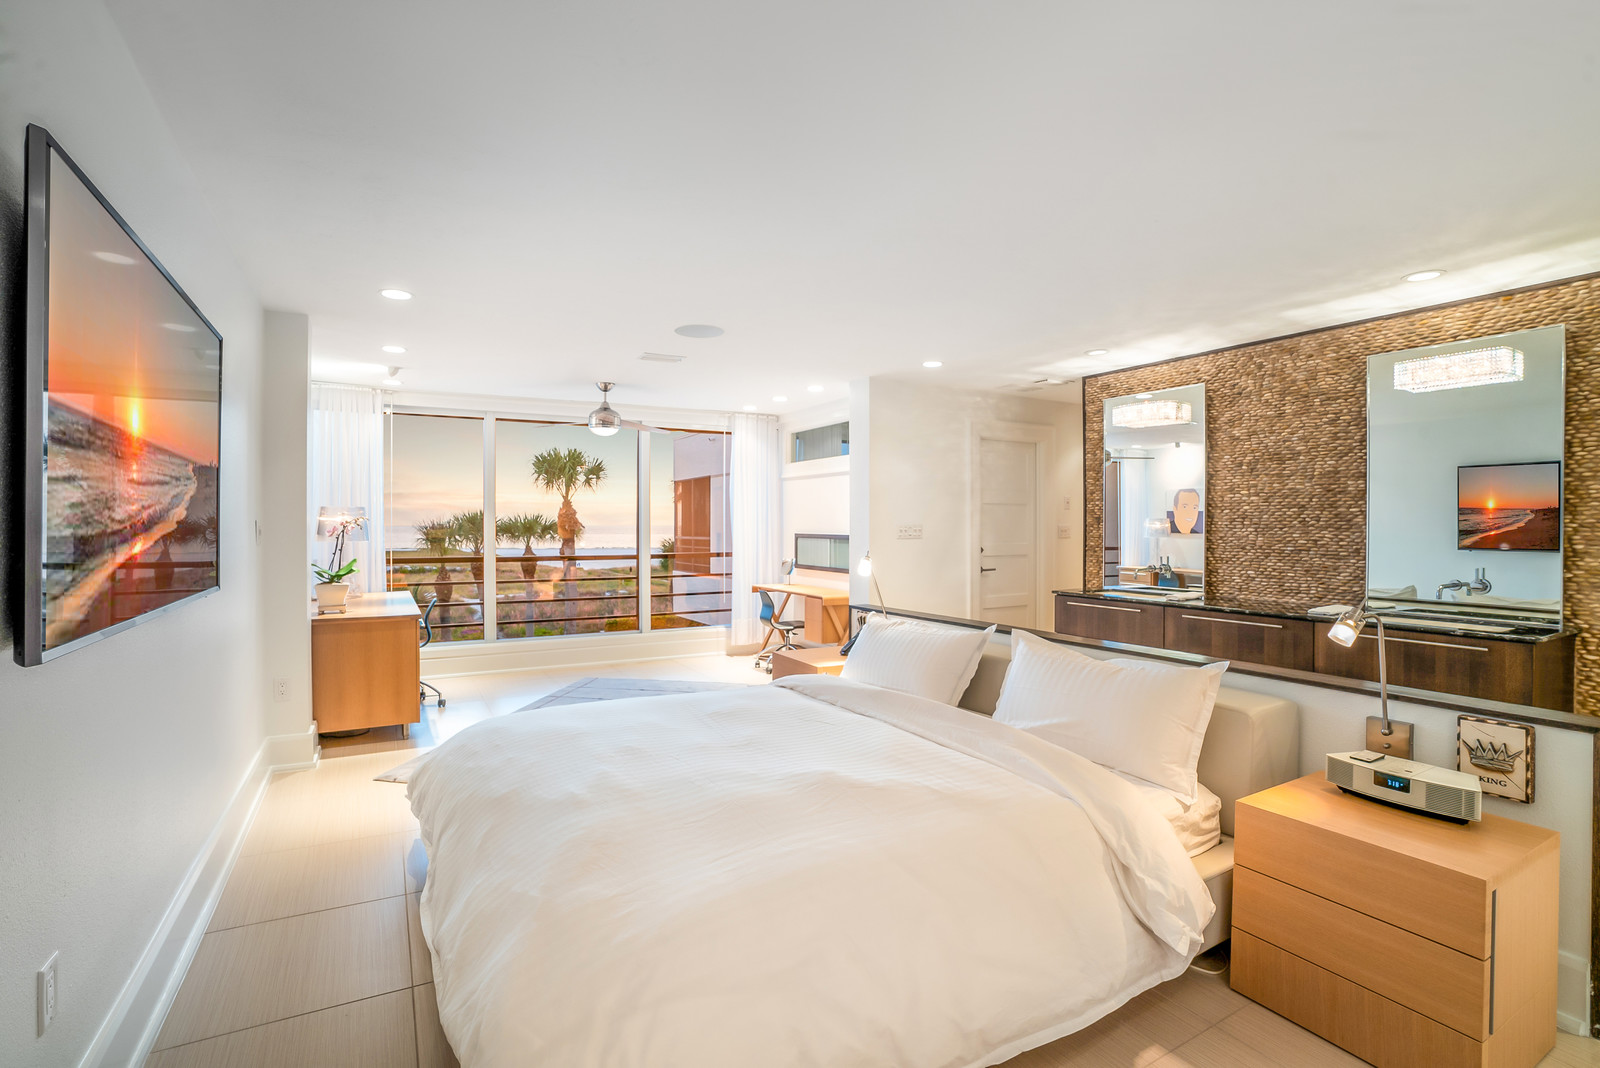 The master suite is a modern oasis that feels like a luxurious, 4-star hotel. Spanning white wall space will host the big-screen or an art collection. Complete with dual walk-in closets and river rock master bath, this suite is dressed to impress.